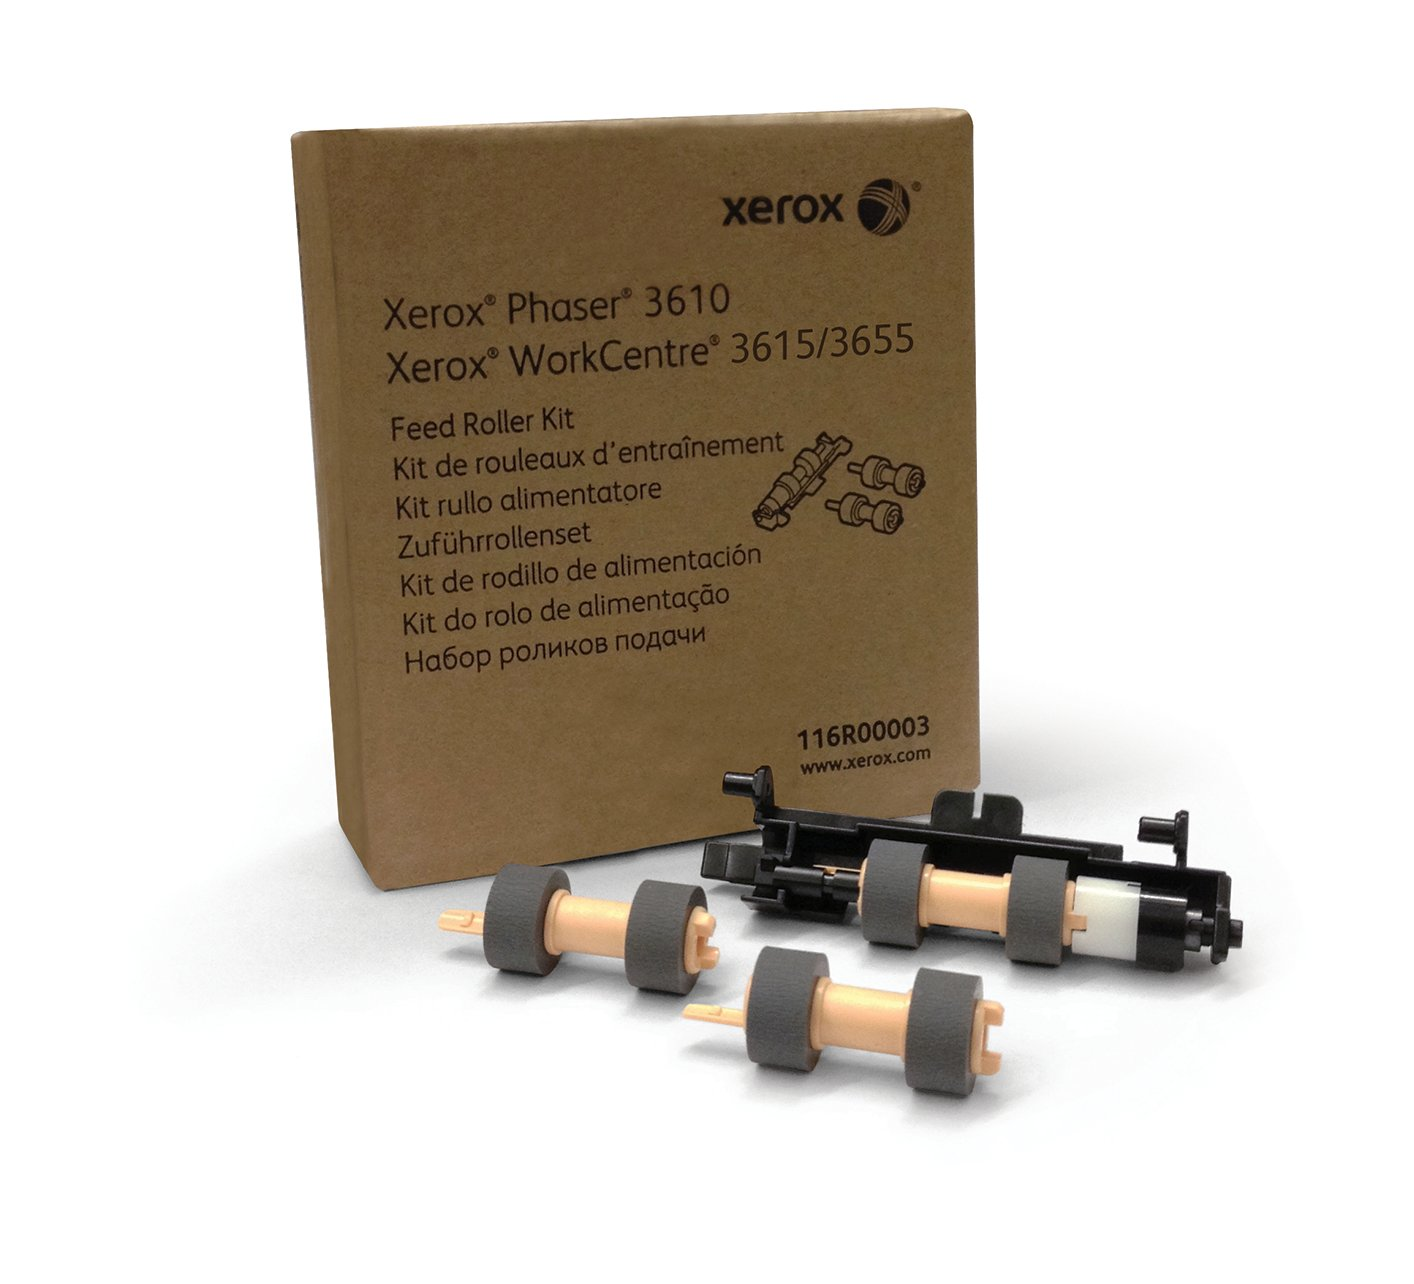 Genuine Xerox Paper Feed Roller Kit for the Xerox Phaser 3610 or WorkCentre 3615, 116R00003 by Xerox